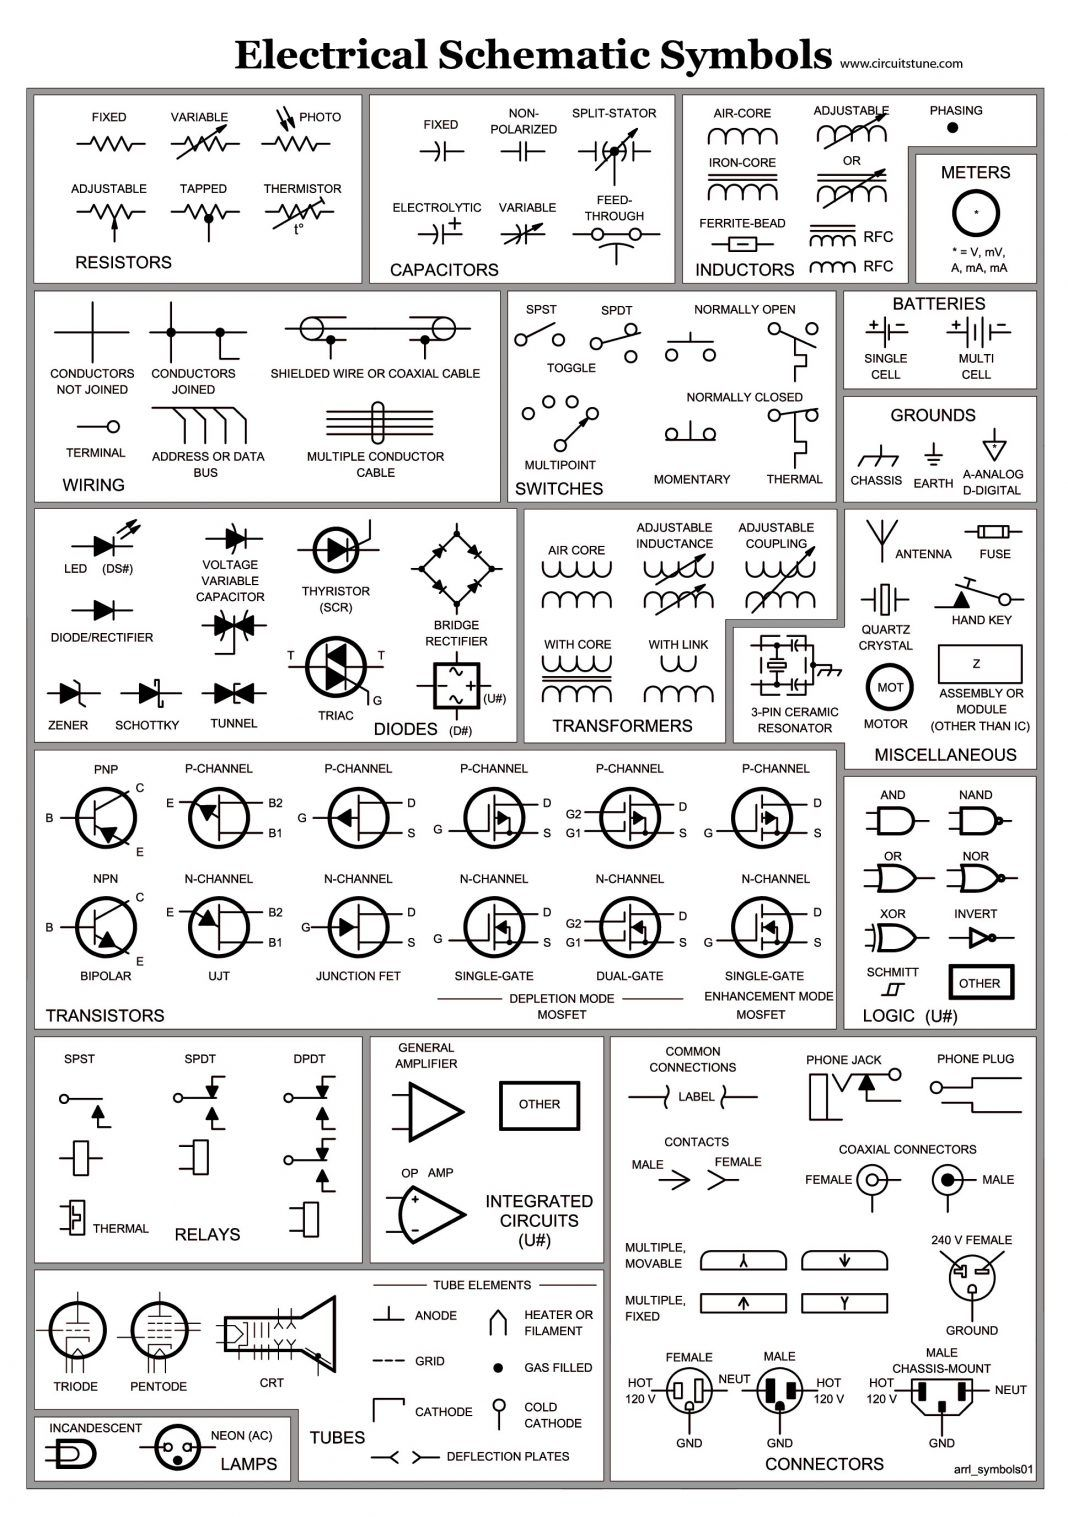 Wiring Diagram Symbols Legend Control Wiring Diagram